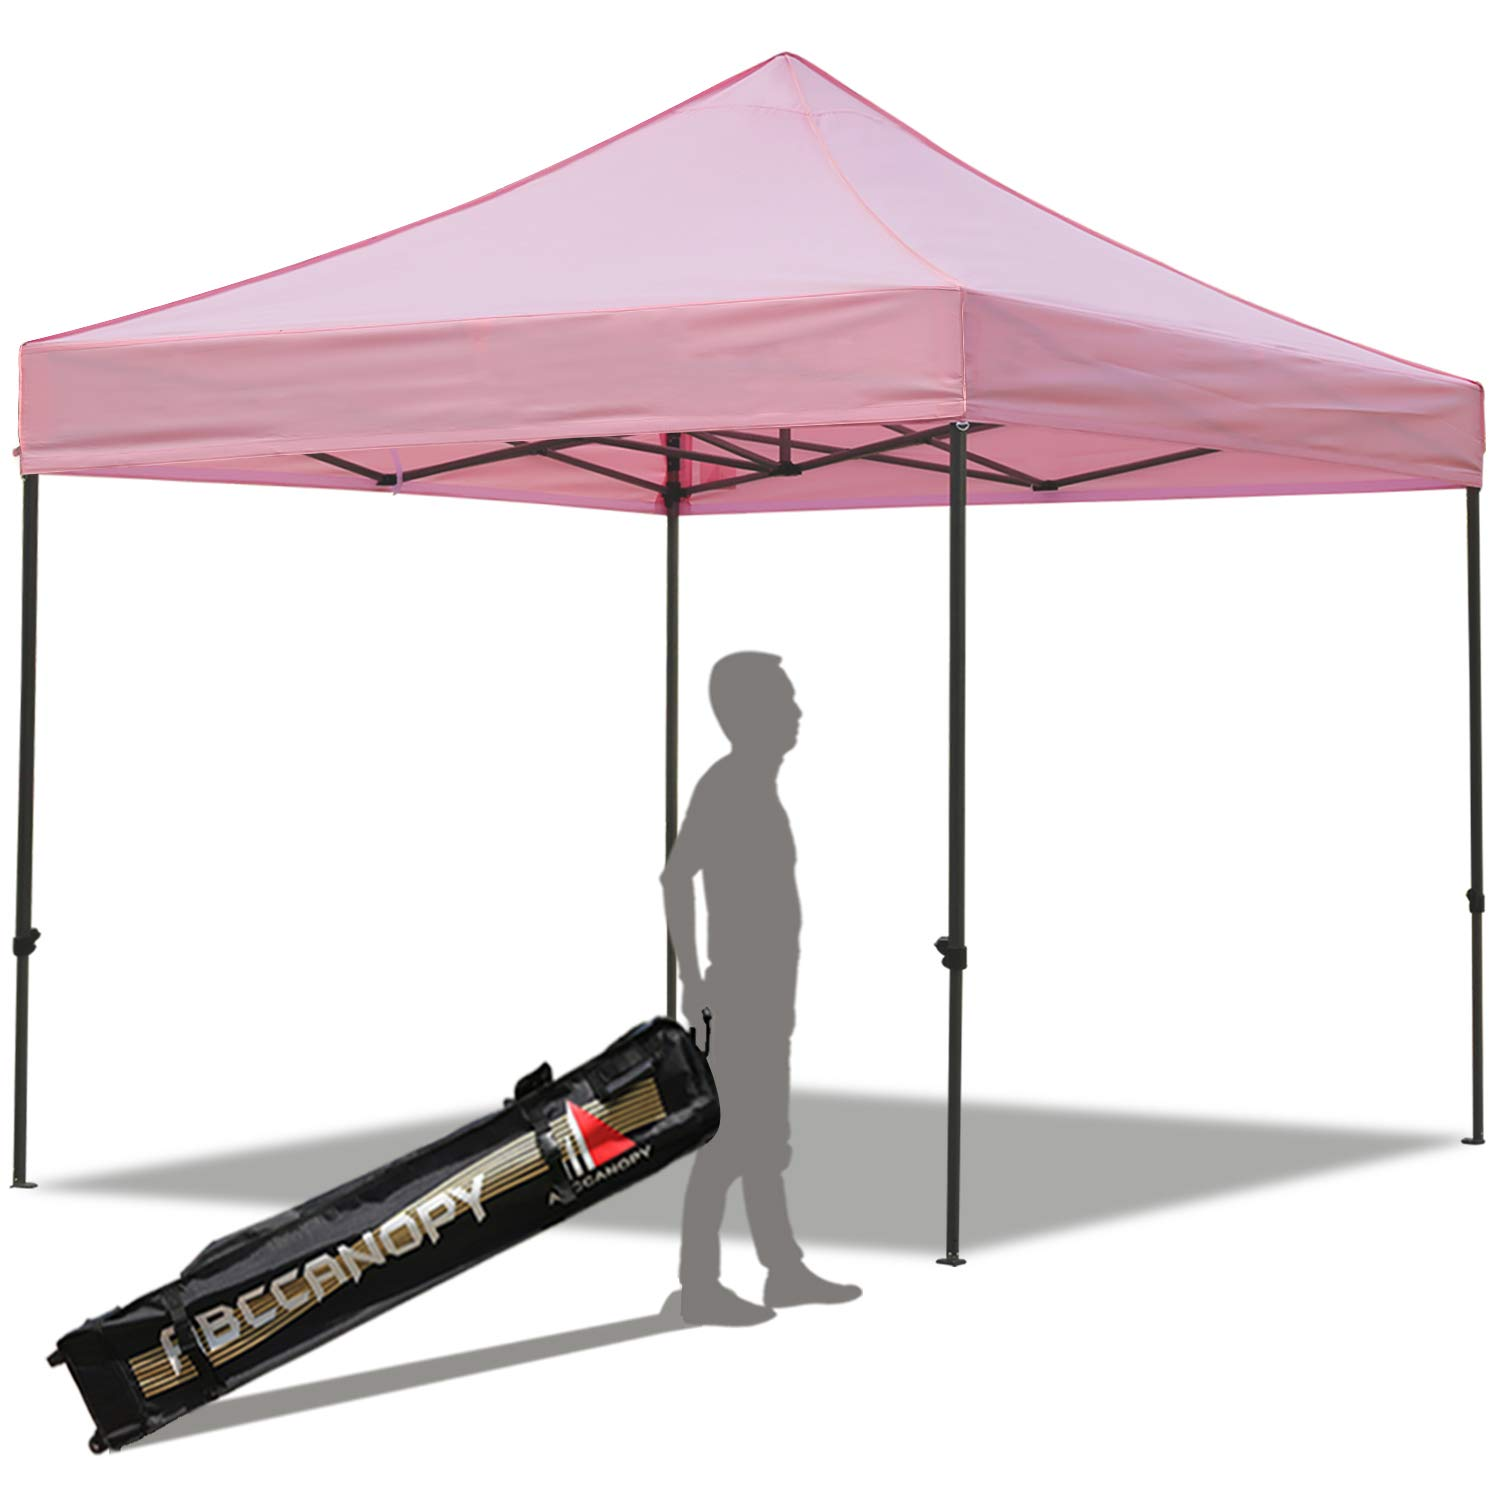 ABCCANOPY Pop up Canopy Tent Commercial Instant Shelter with Wheeled Carry Bag, 10x10 FT Pink